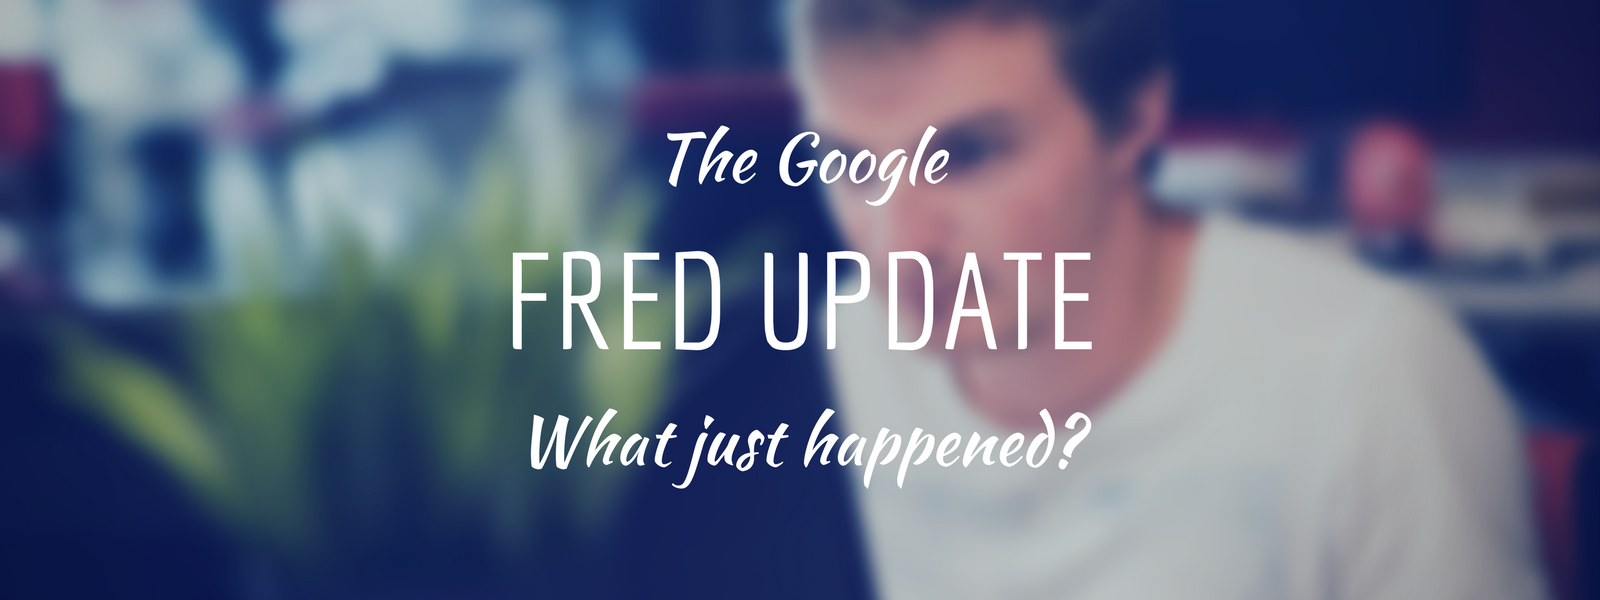 Google Fred Update: What just happened?